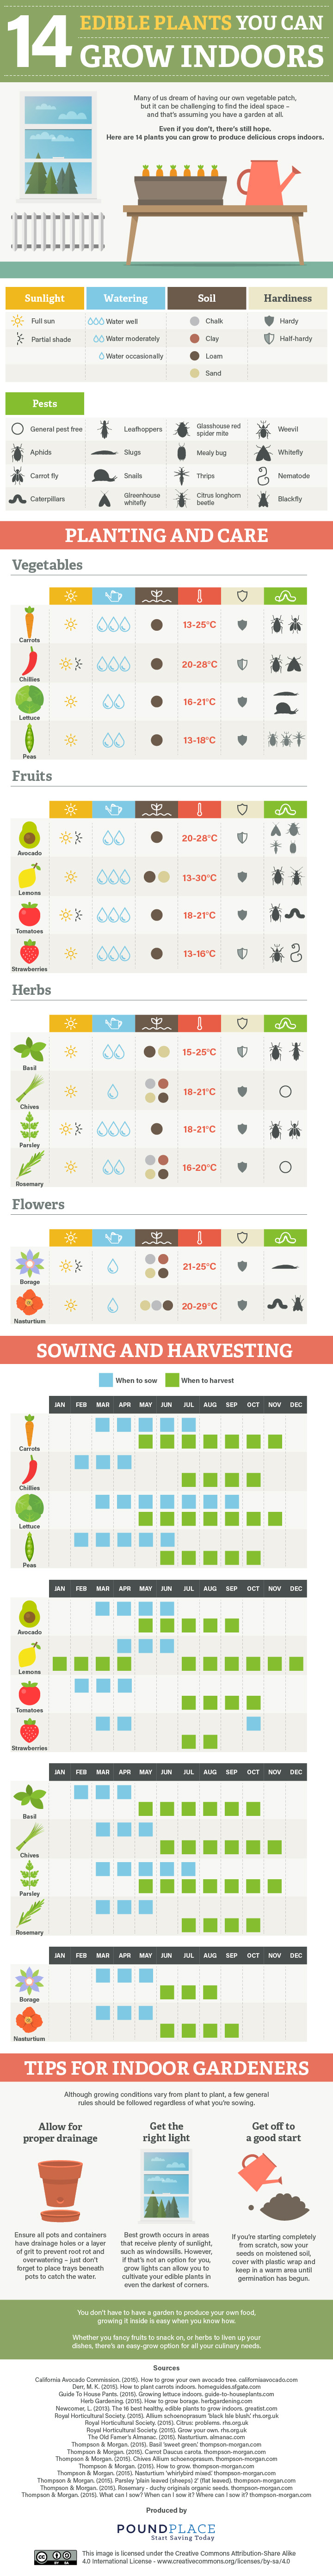 indoor plants, indoor edible plants, growing plants indoors, growing inside, growing plants inside, winter gardening, winter indoor gardening, indoor plants, indoor food garden, food gardening, infographic, reader submission